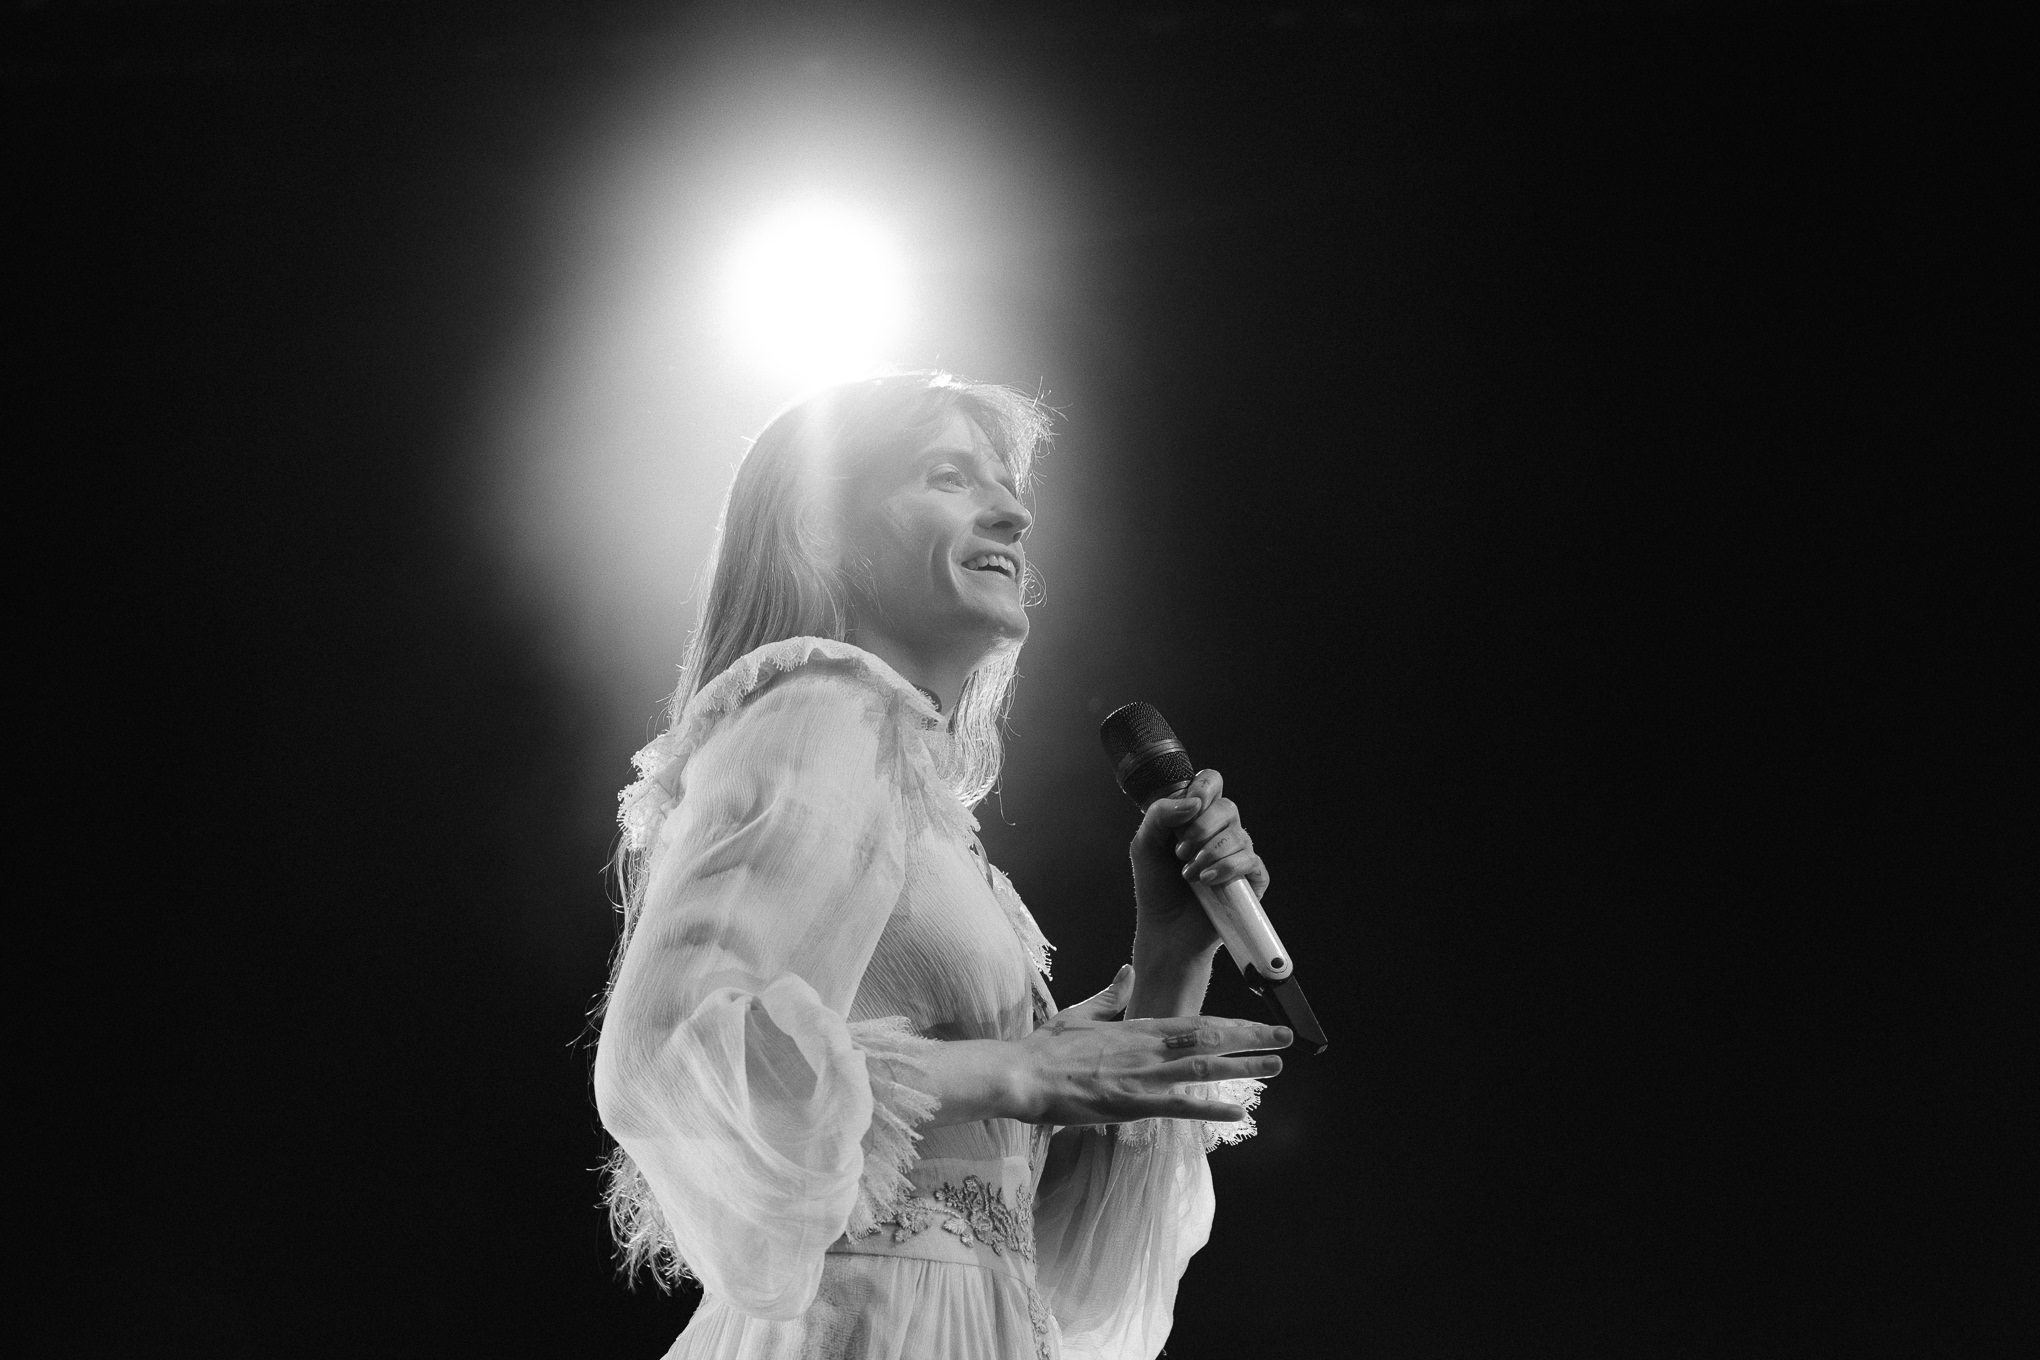 20190808_Florence And The Machine_010.jpg